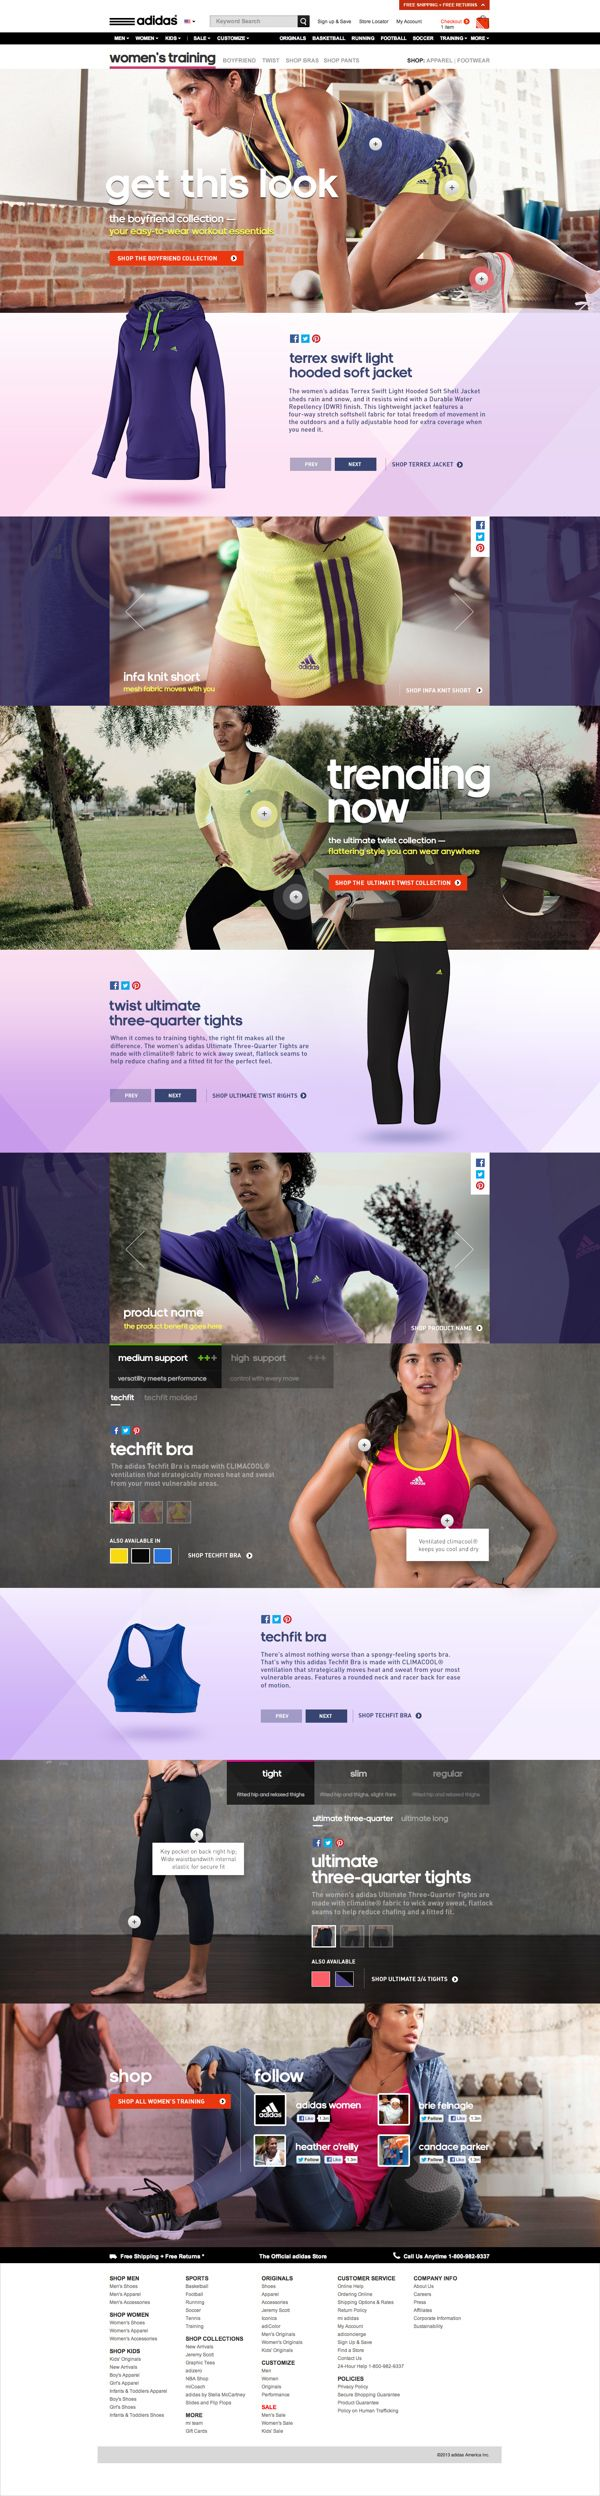 adidas Women's Training Experience by Ryan Mendes, via Behance